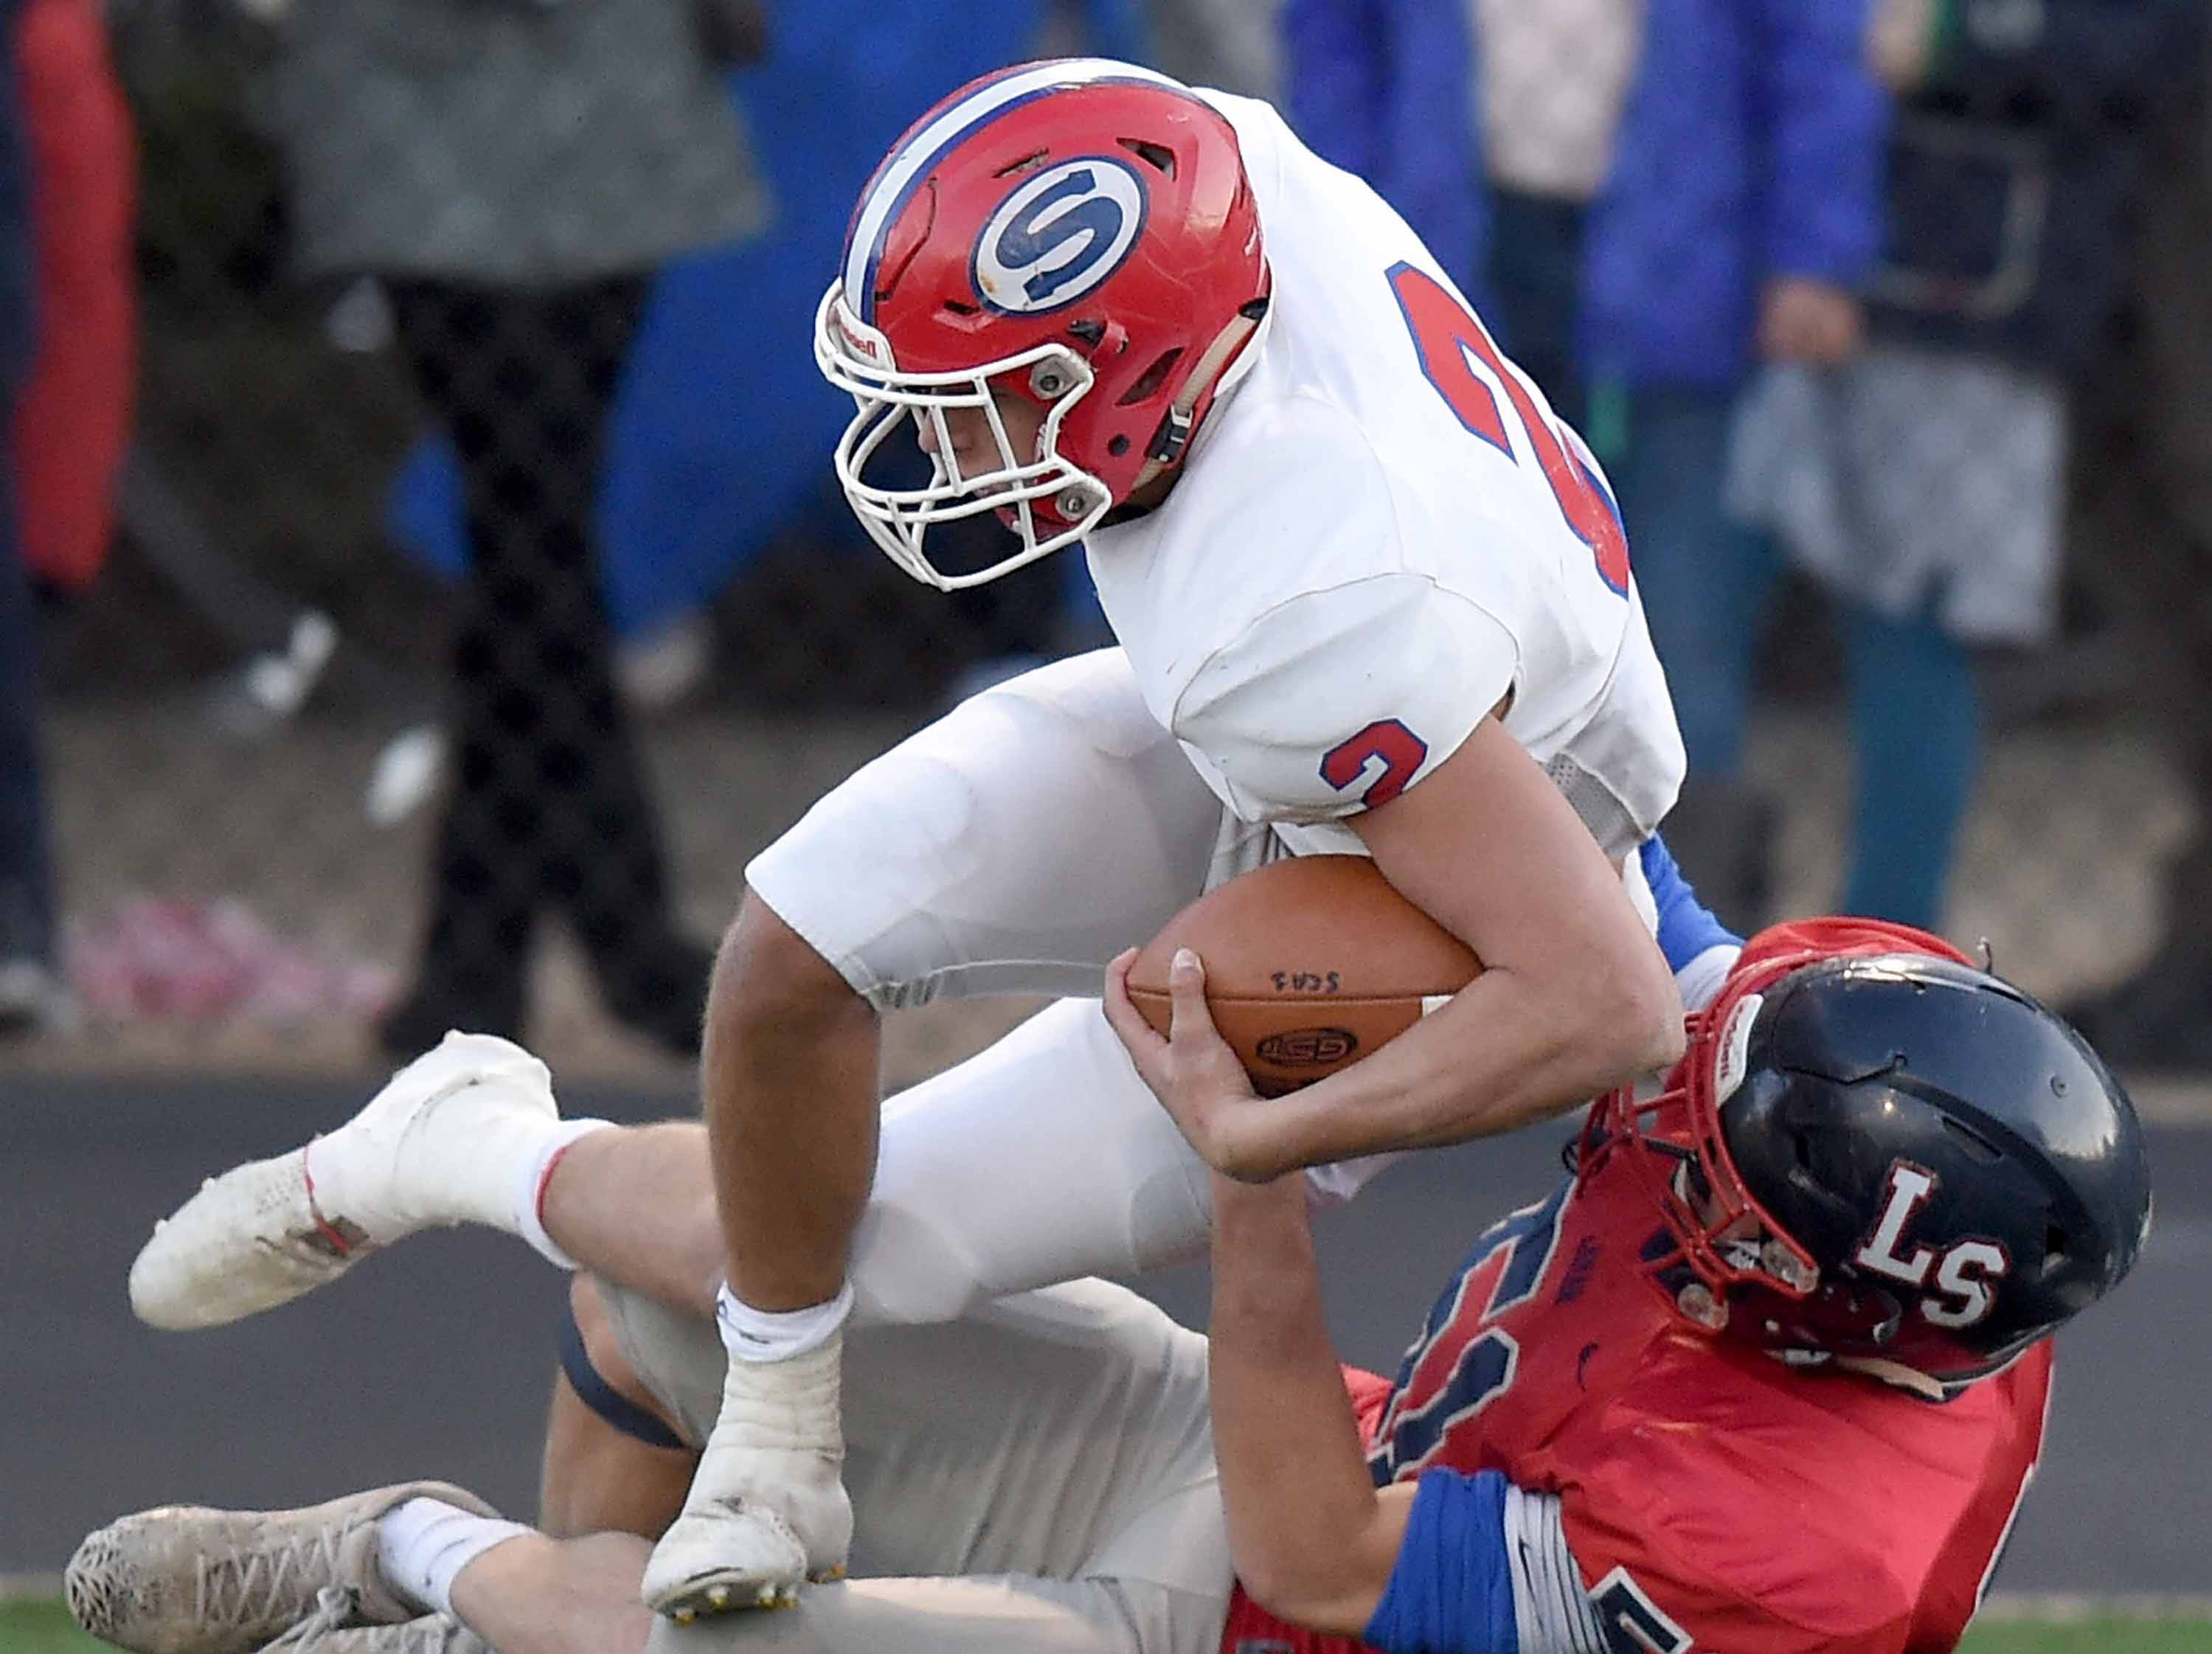 Simpson Academy's Michael Winstead (2) is tackled by Lamar School's J.T. Alridge (51) on Thursday, November 15, 2018, in the MAIS Class AAAA-D2 Football Championship at Jackson Academy in Jackson, Miss.